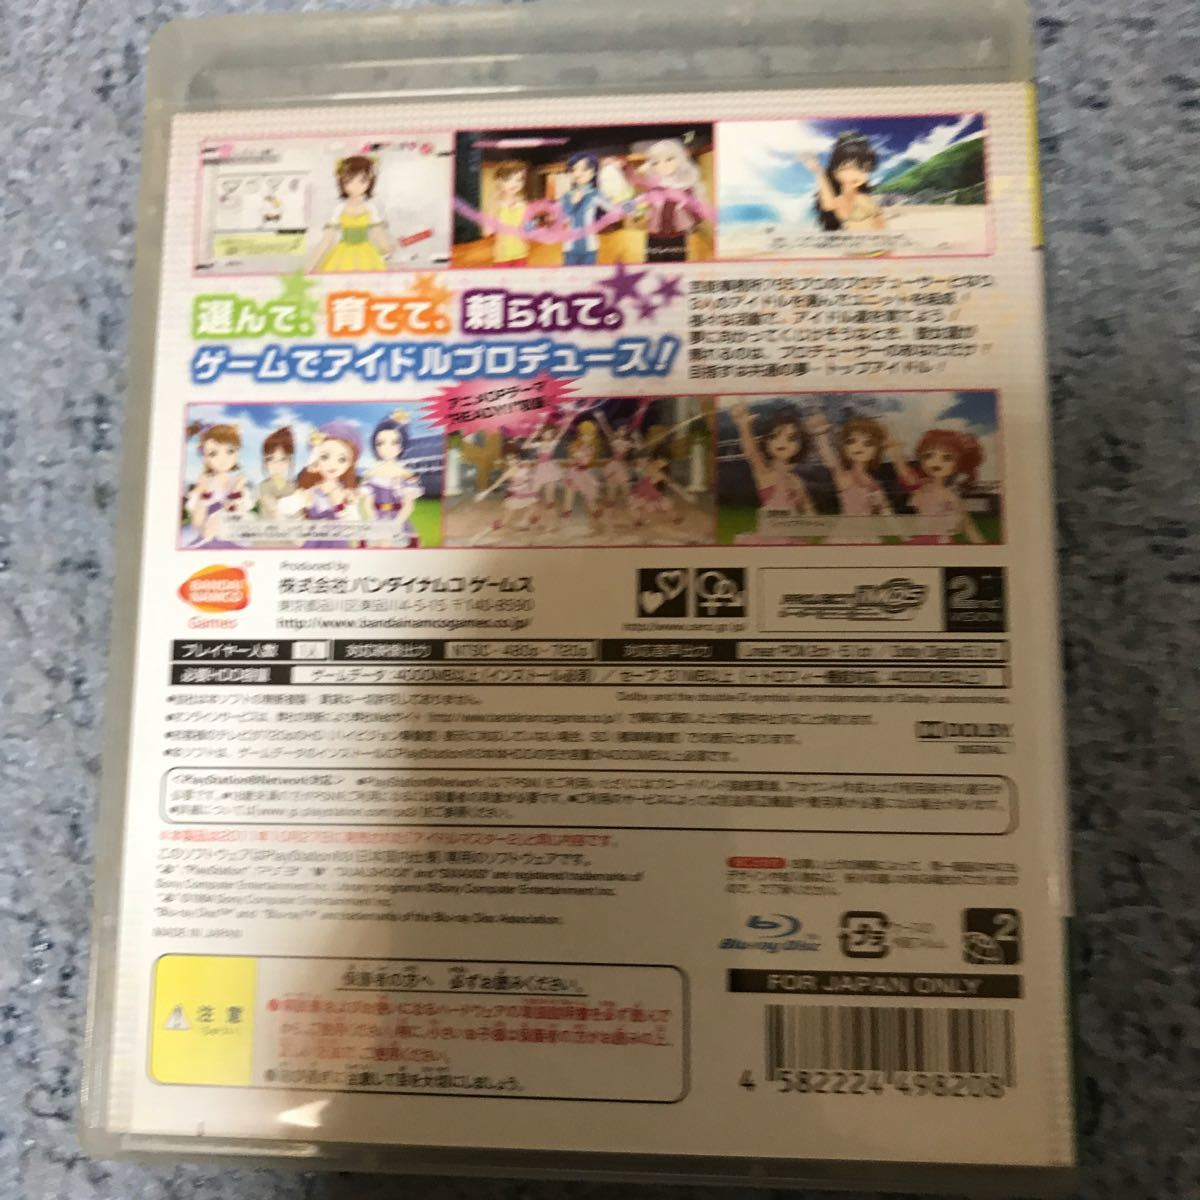 【PS3】 アイドルマスター2 (THE IDOLM@STER2) [PS3 the best]